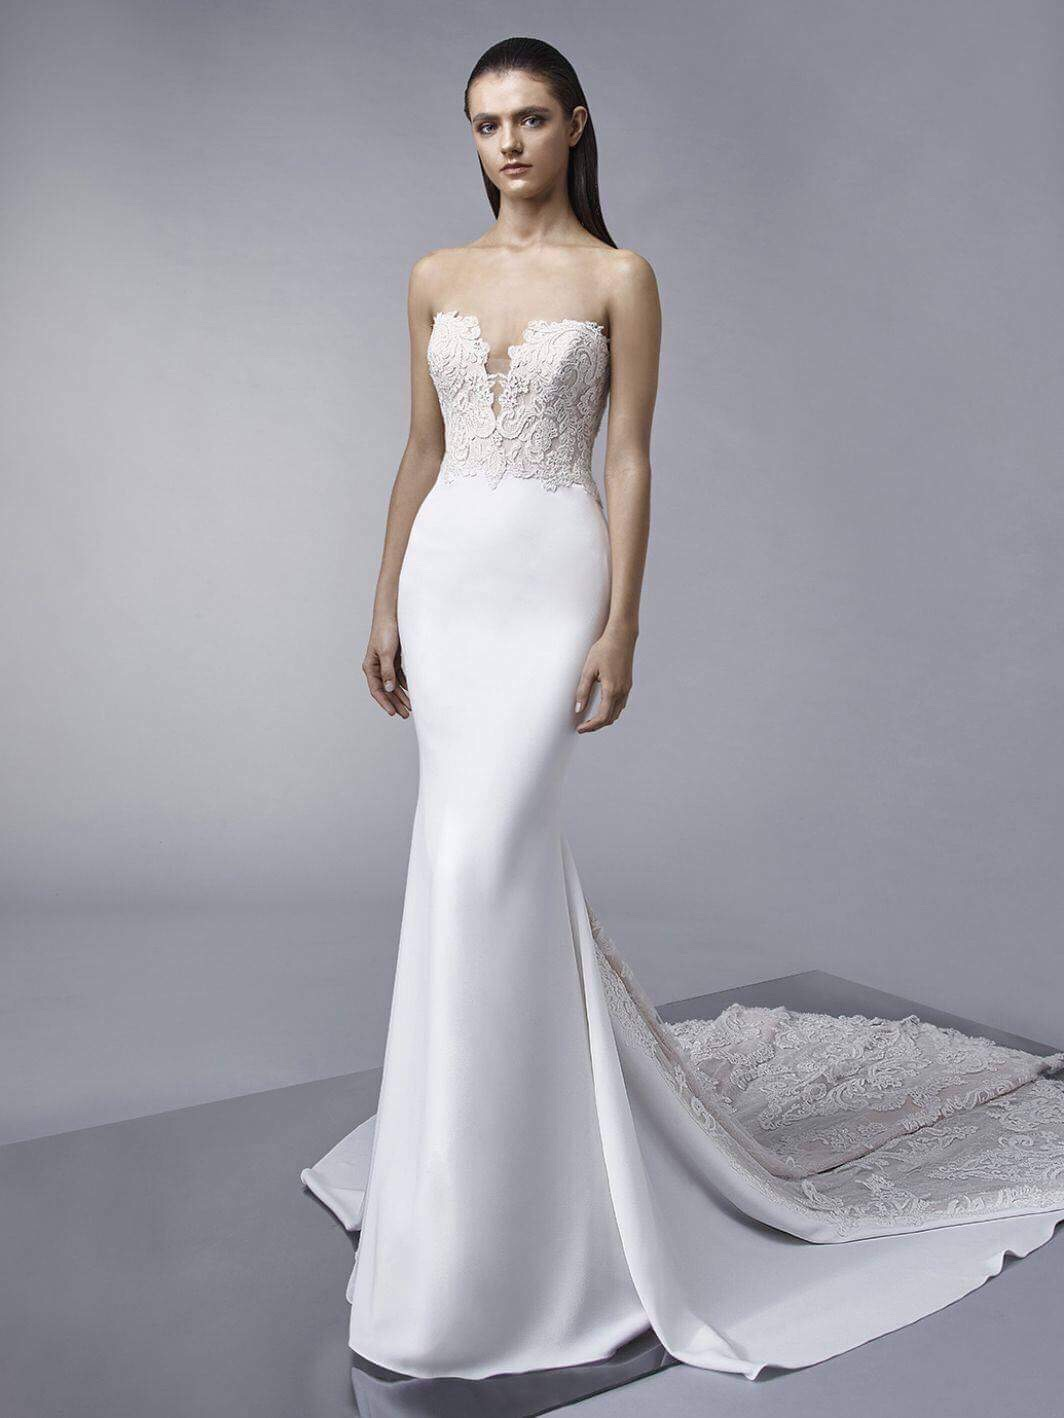 Ask the Experts: What Type of Dress Should I Choose for a Destination Wedding? images 7